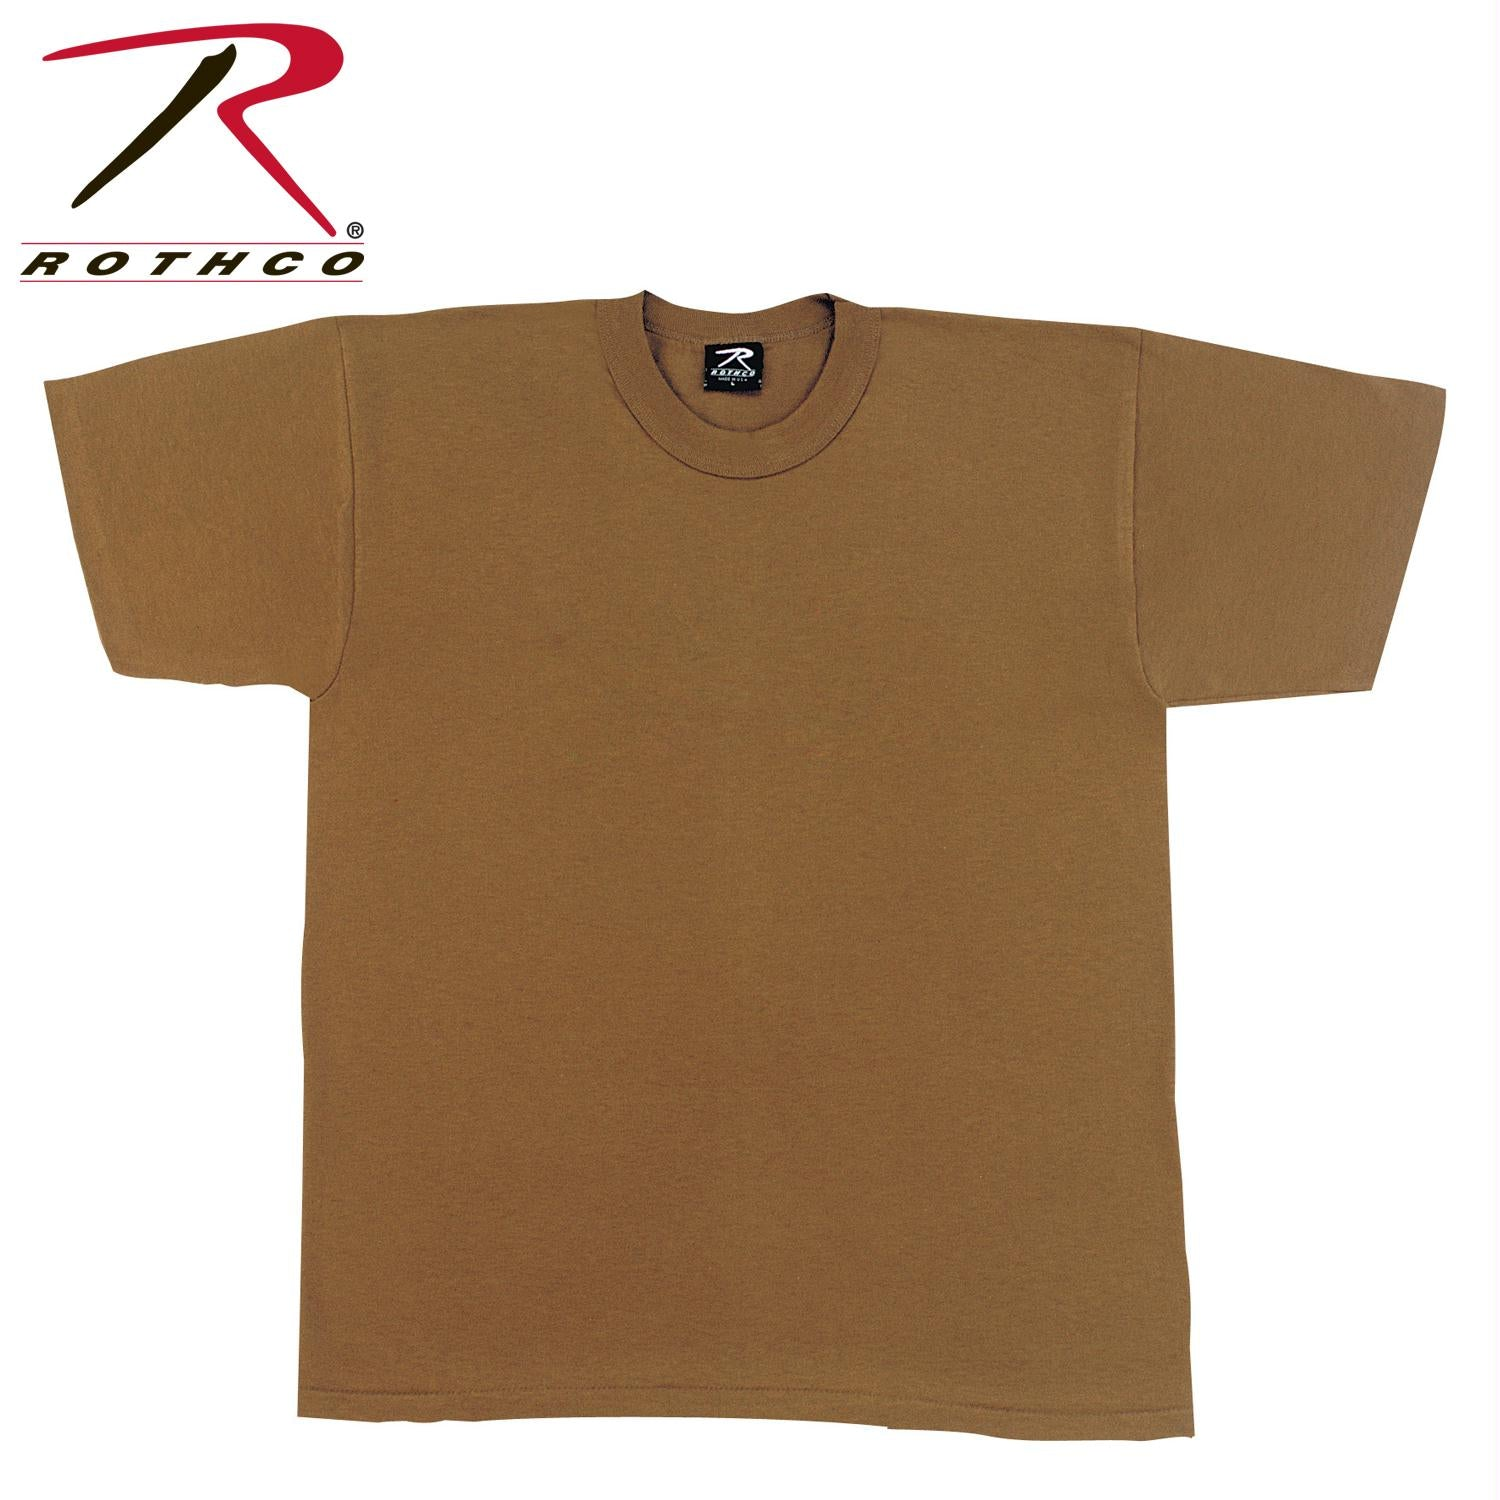 Rothco Solid Color Poly/Cotton Military T-Shirt - Brown / 3XL